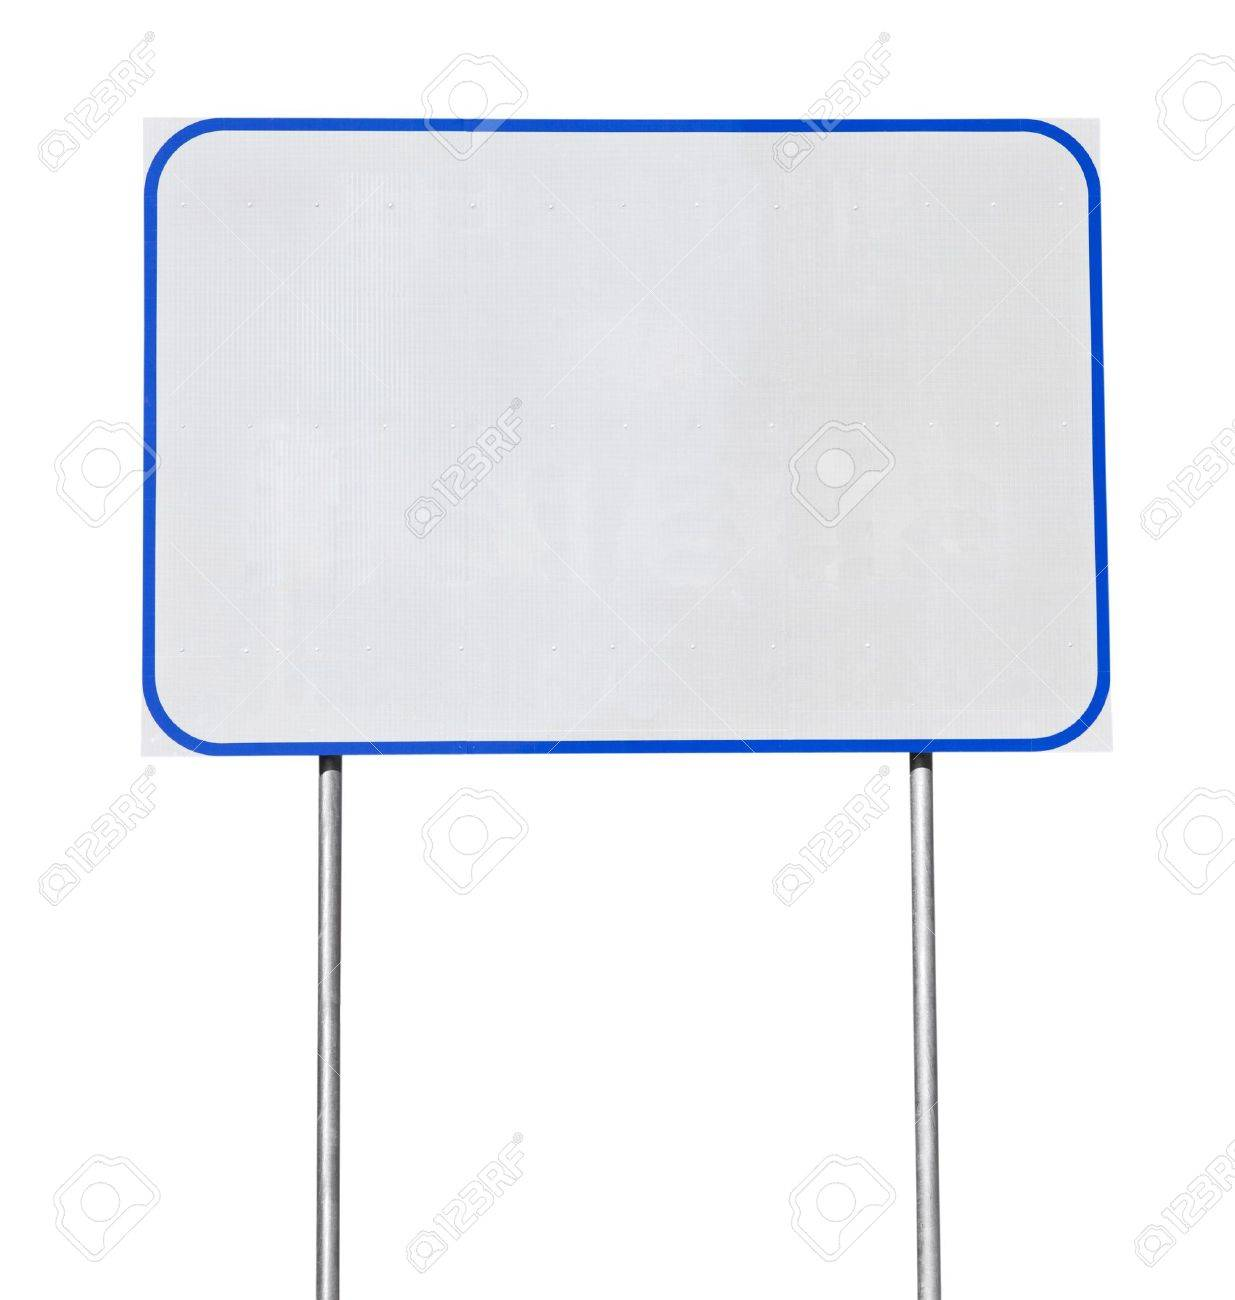 Big blank white road sign with blue trim isolated. Stock Photo - 13385817